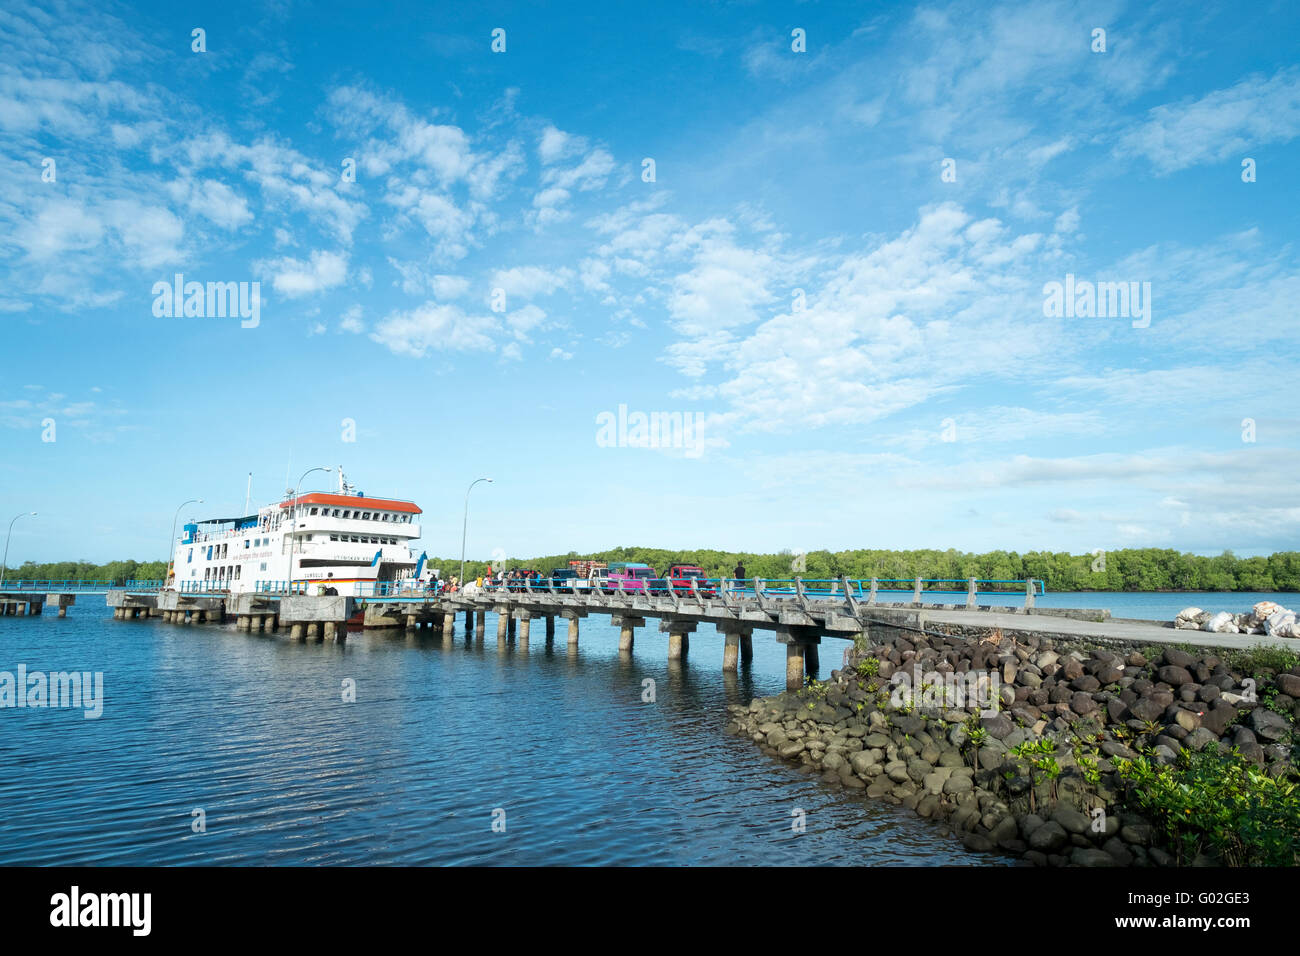 The port of Muara Siberut for ship and ferry from Padang Port - Stock Image